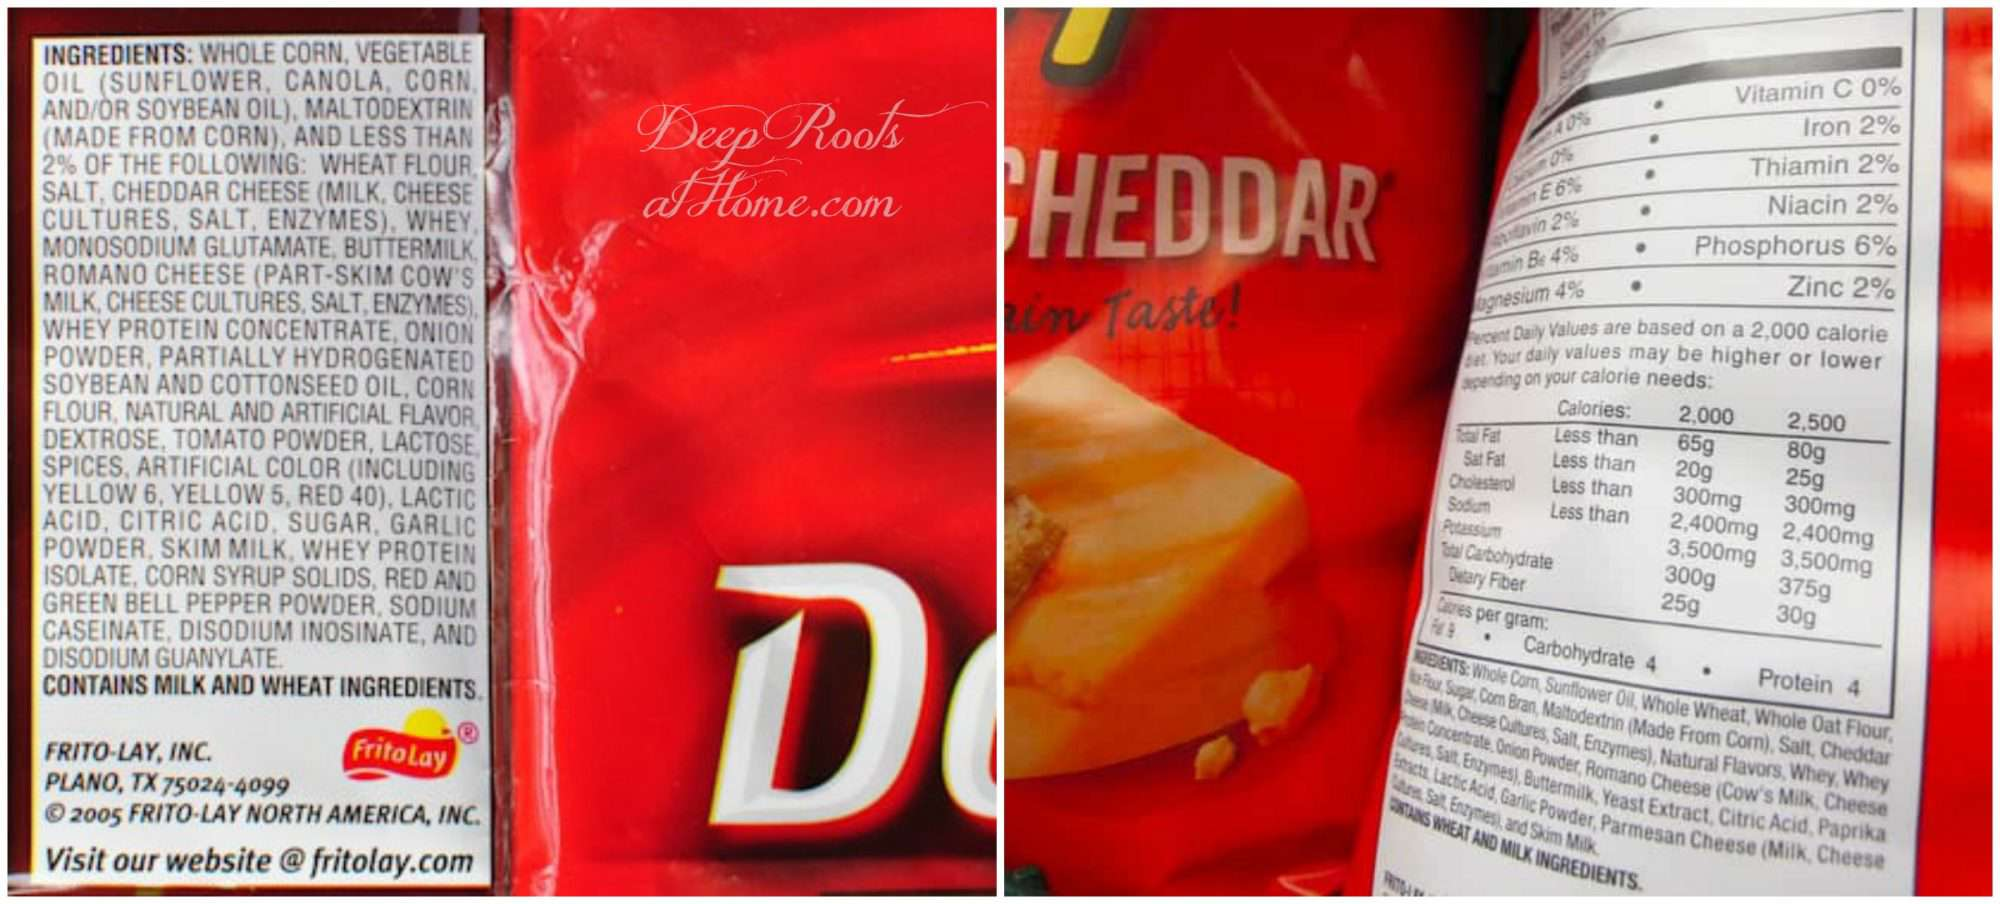 Addictive Flavors & How the Food Giants Have Us Hooked. Sun chips and Doritos